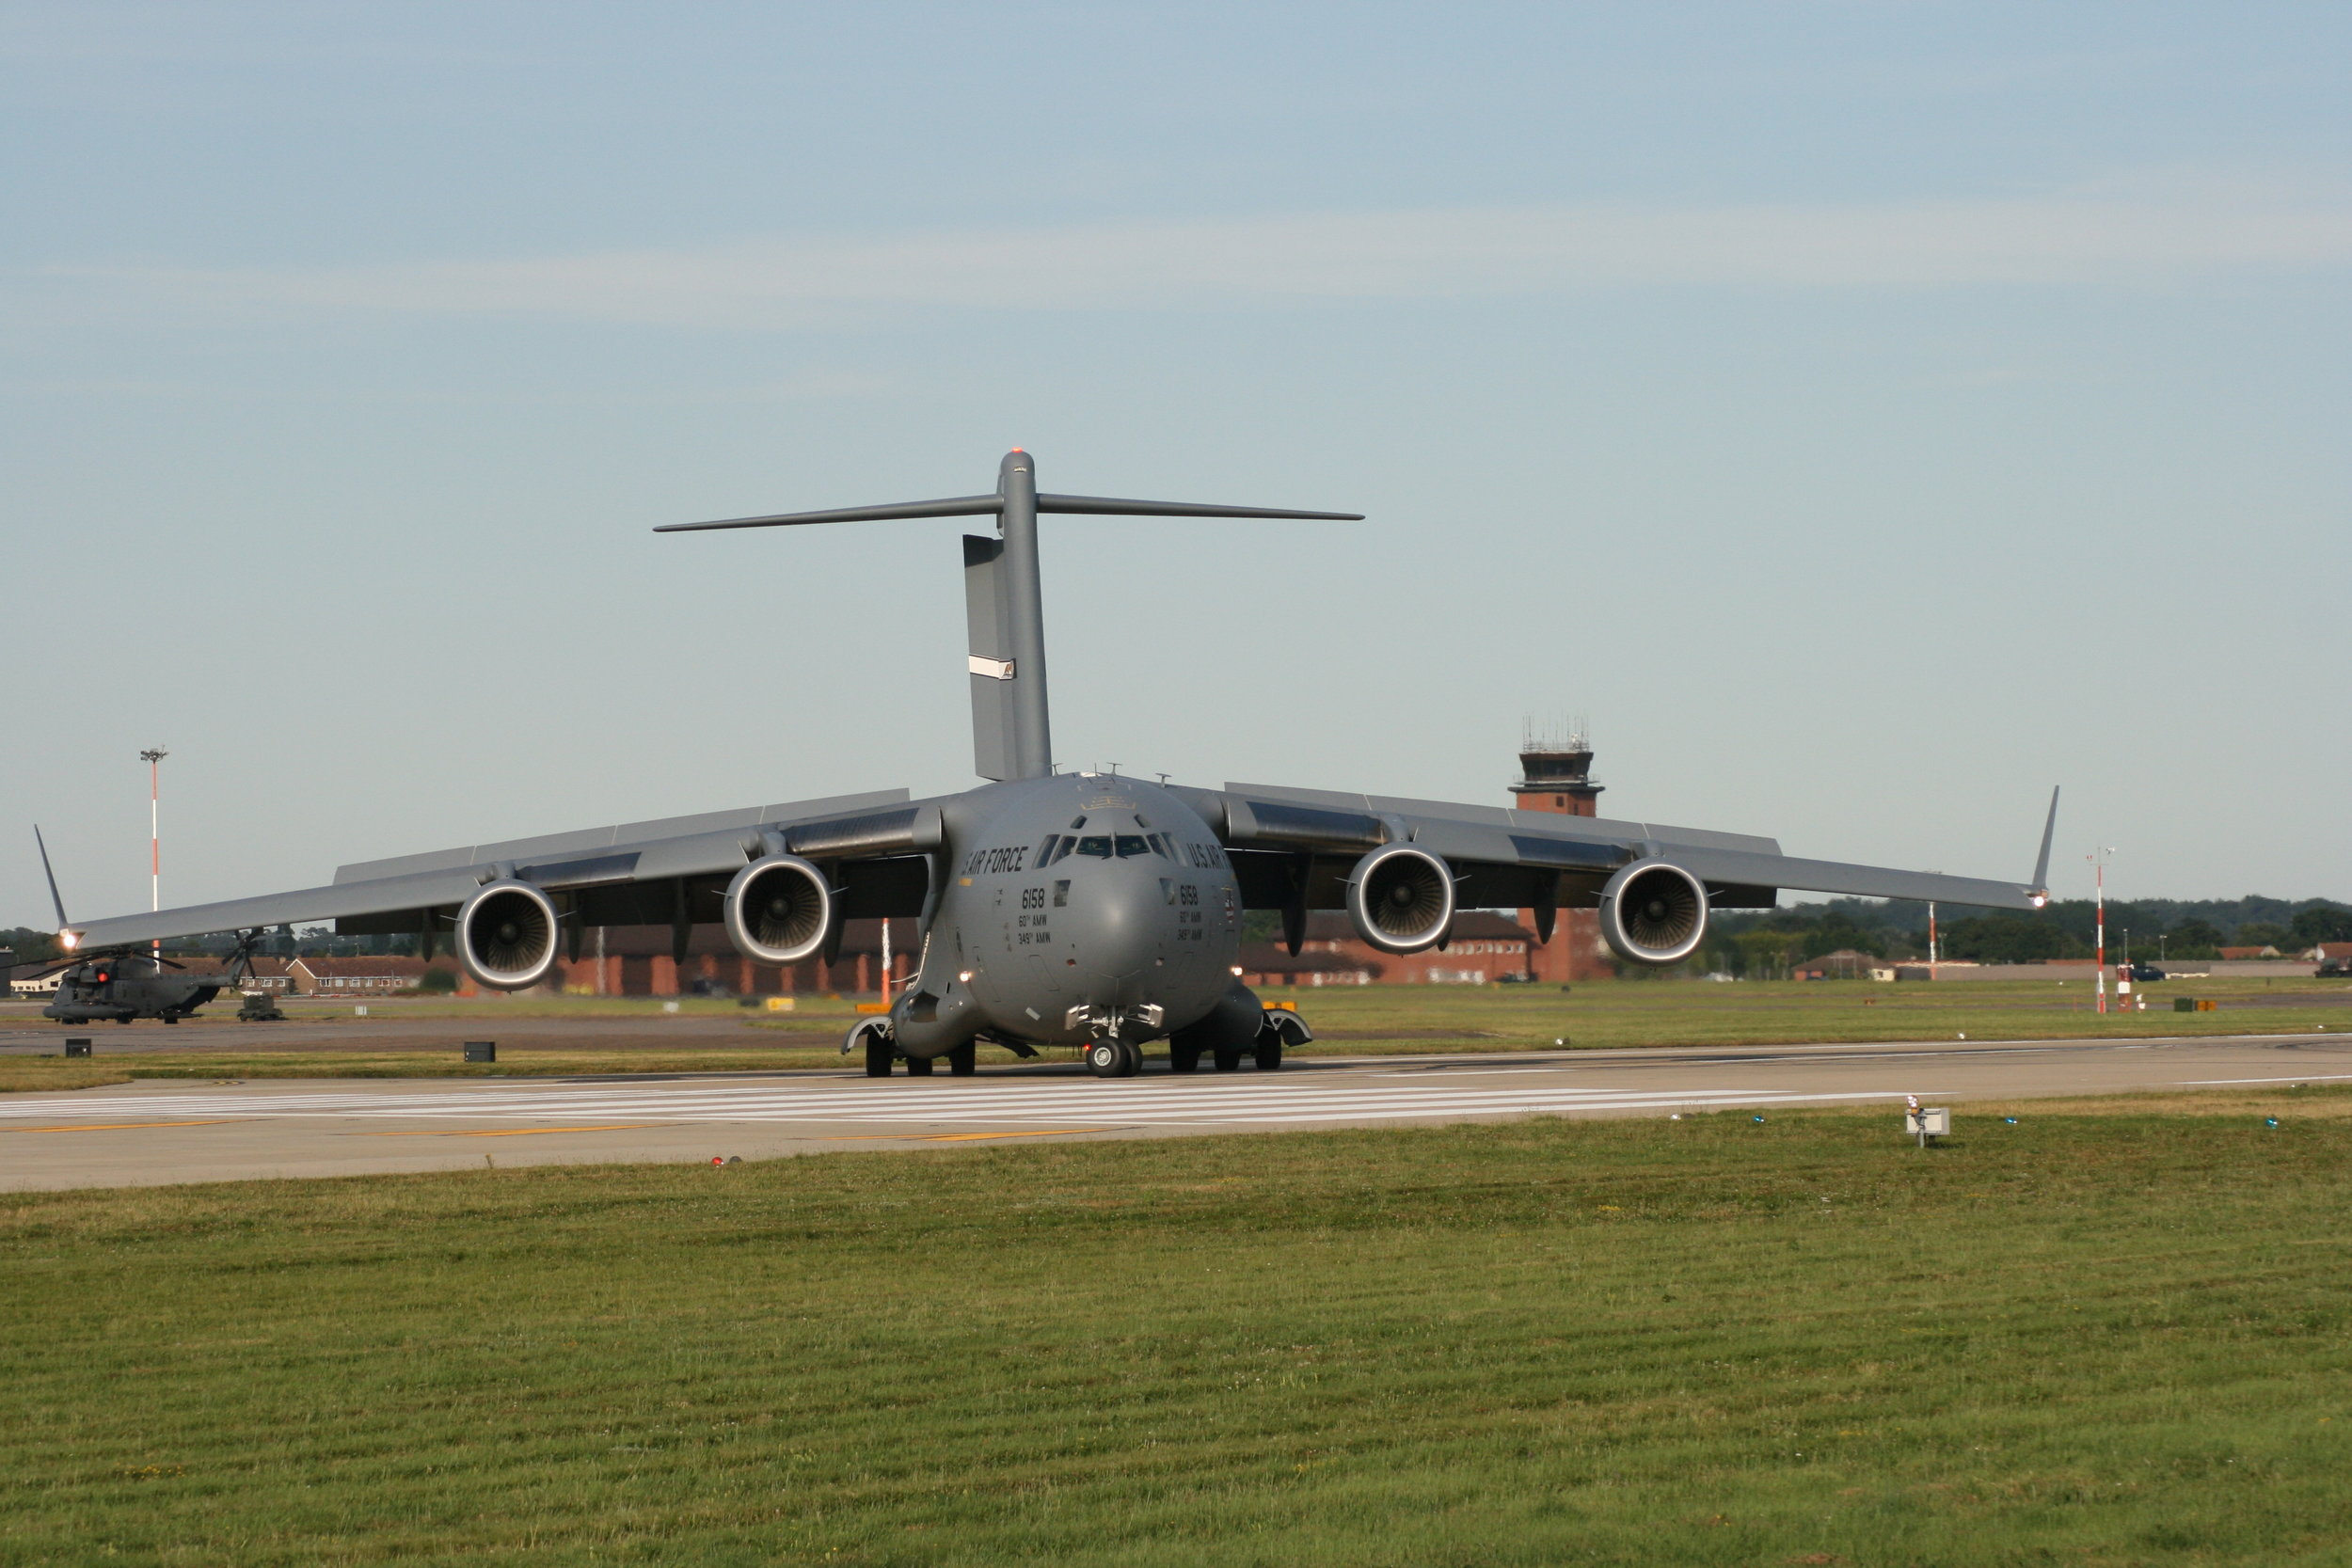 The mighty C-17 Globemaster turning on the tarmac before departure.